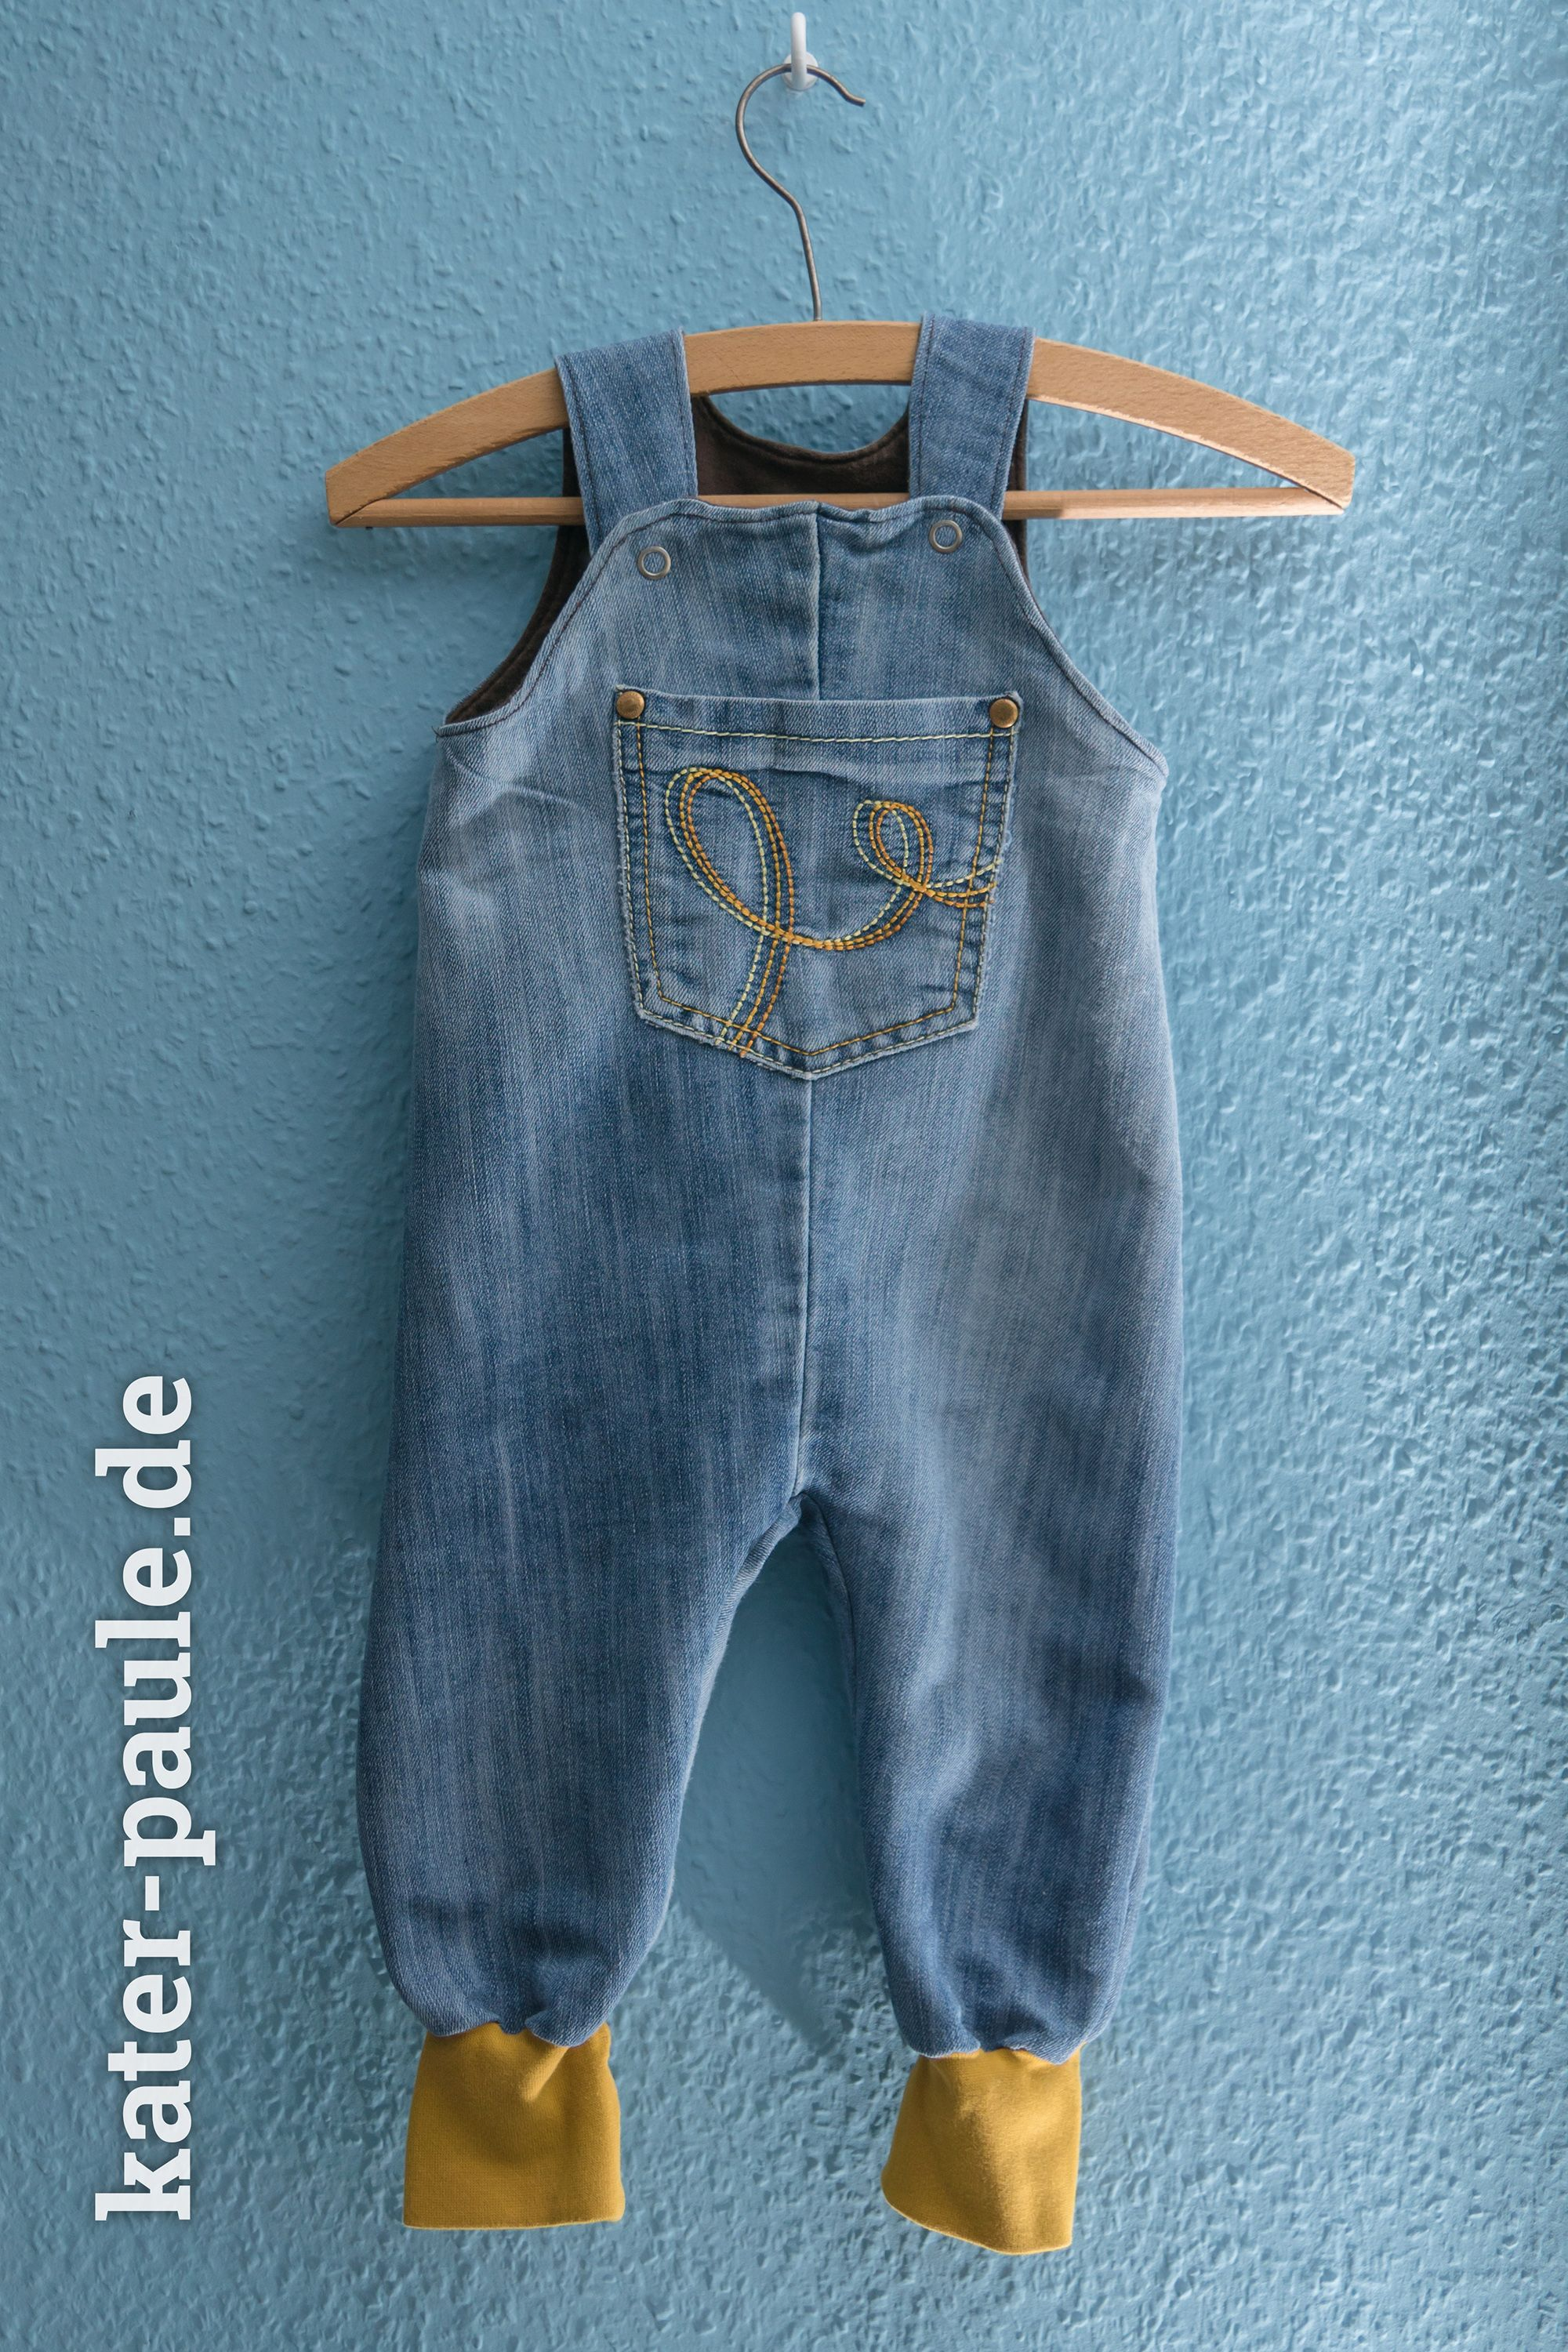 Photo of Papas Altkleider werden zur Babygarderobe – Kater Paule